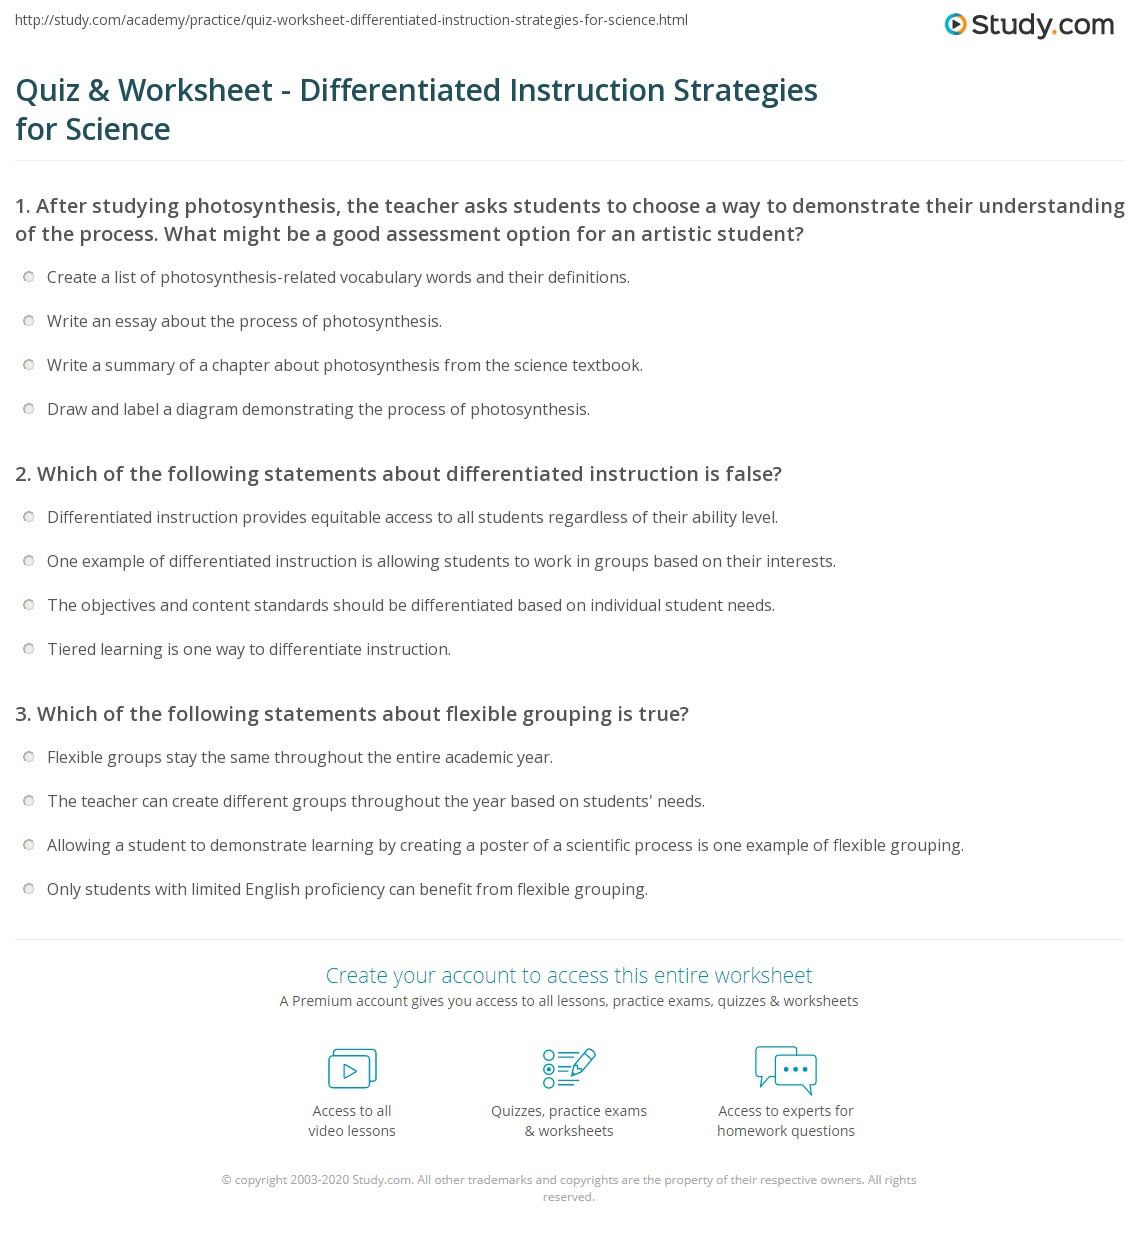 Quiz Worksheet Differentiated Instruction Strategies For Science